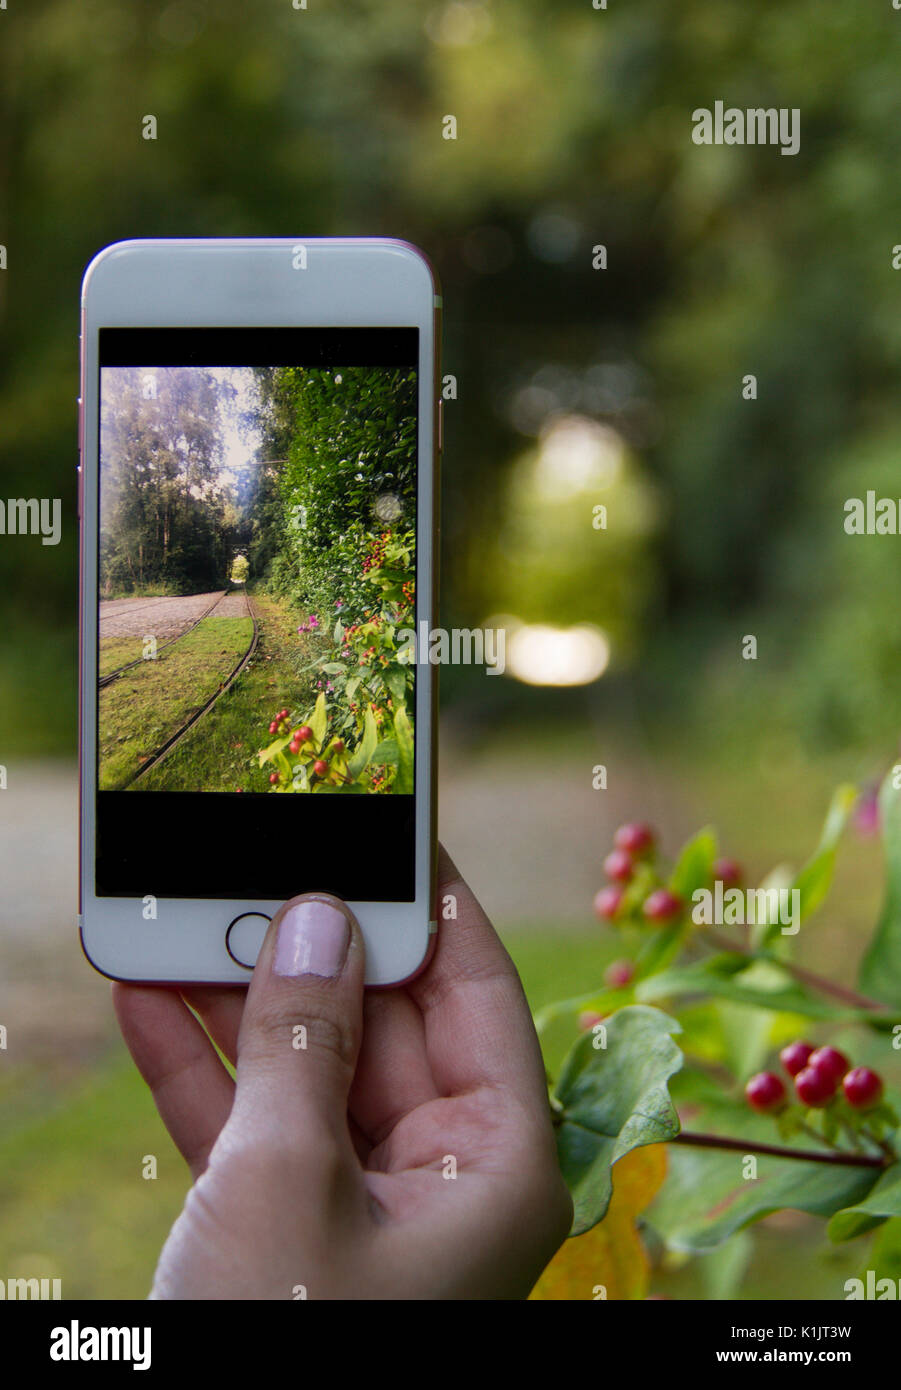 Woman hand takung photo using mobile phone of train lines in nature surroundings at Heaton Park, Manchester - Stock Image